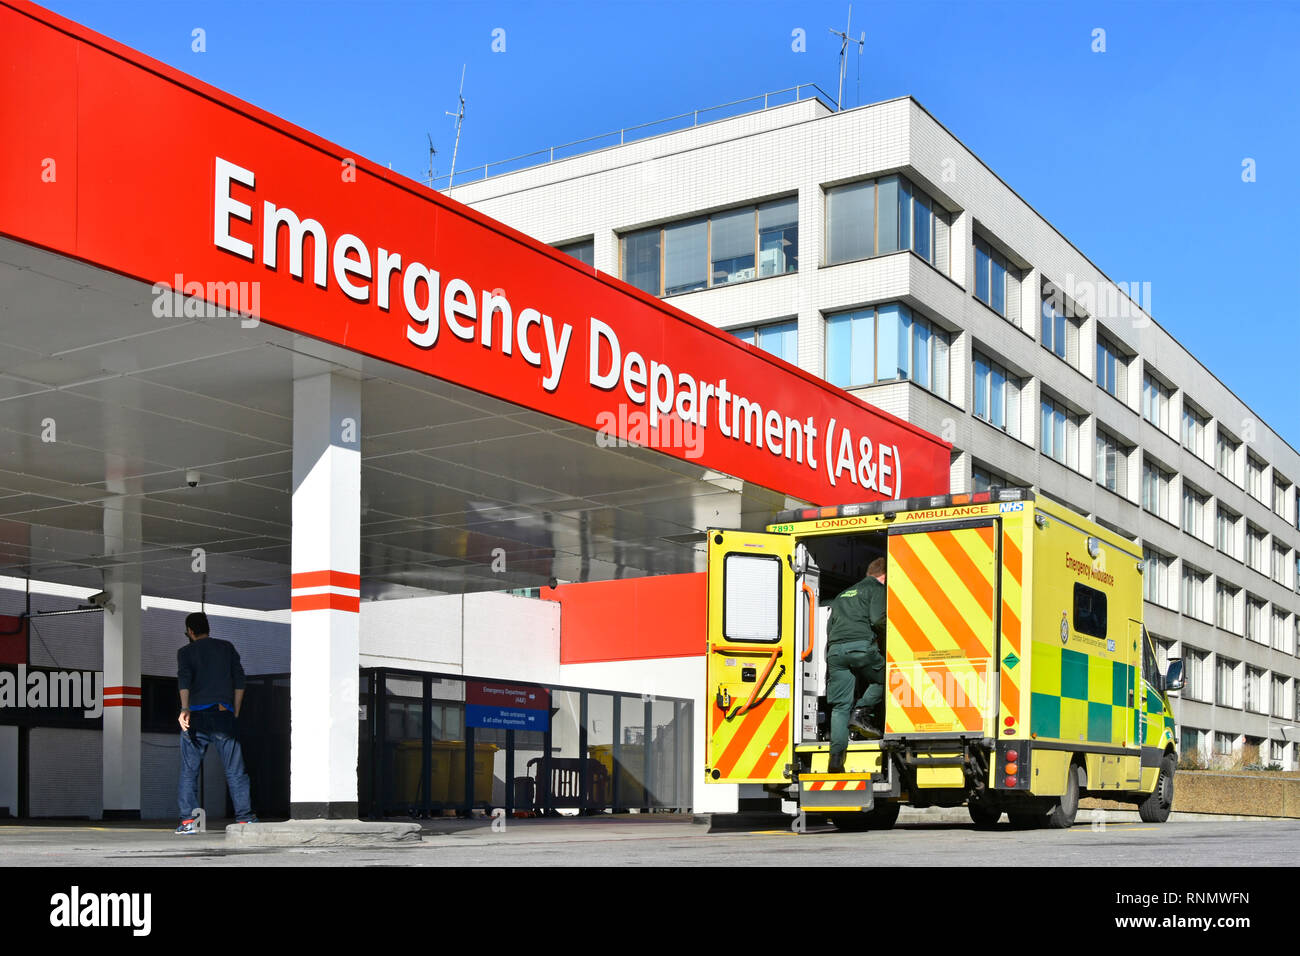 London NHS national health service ambulance & driver outside healthcare entrance hospital building A&E accident and emergency department England UK - Stock Image